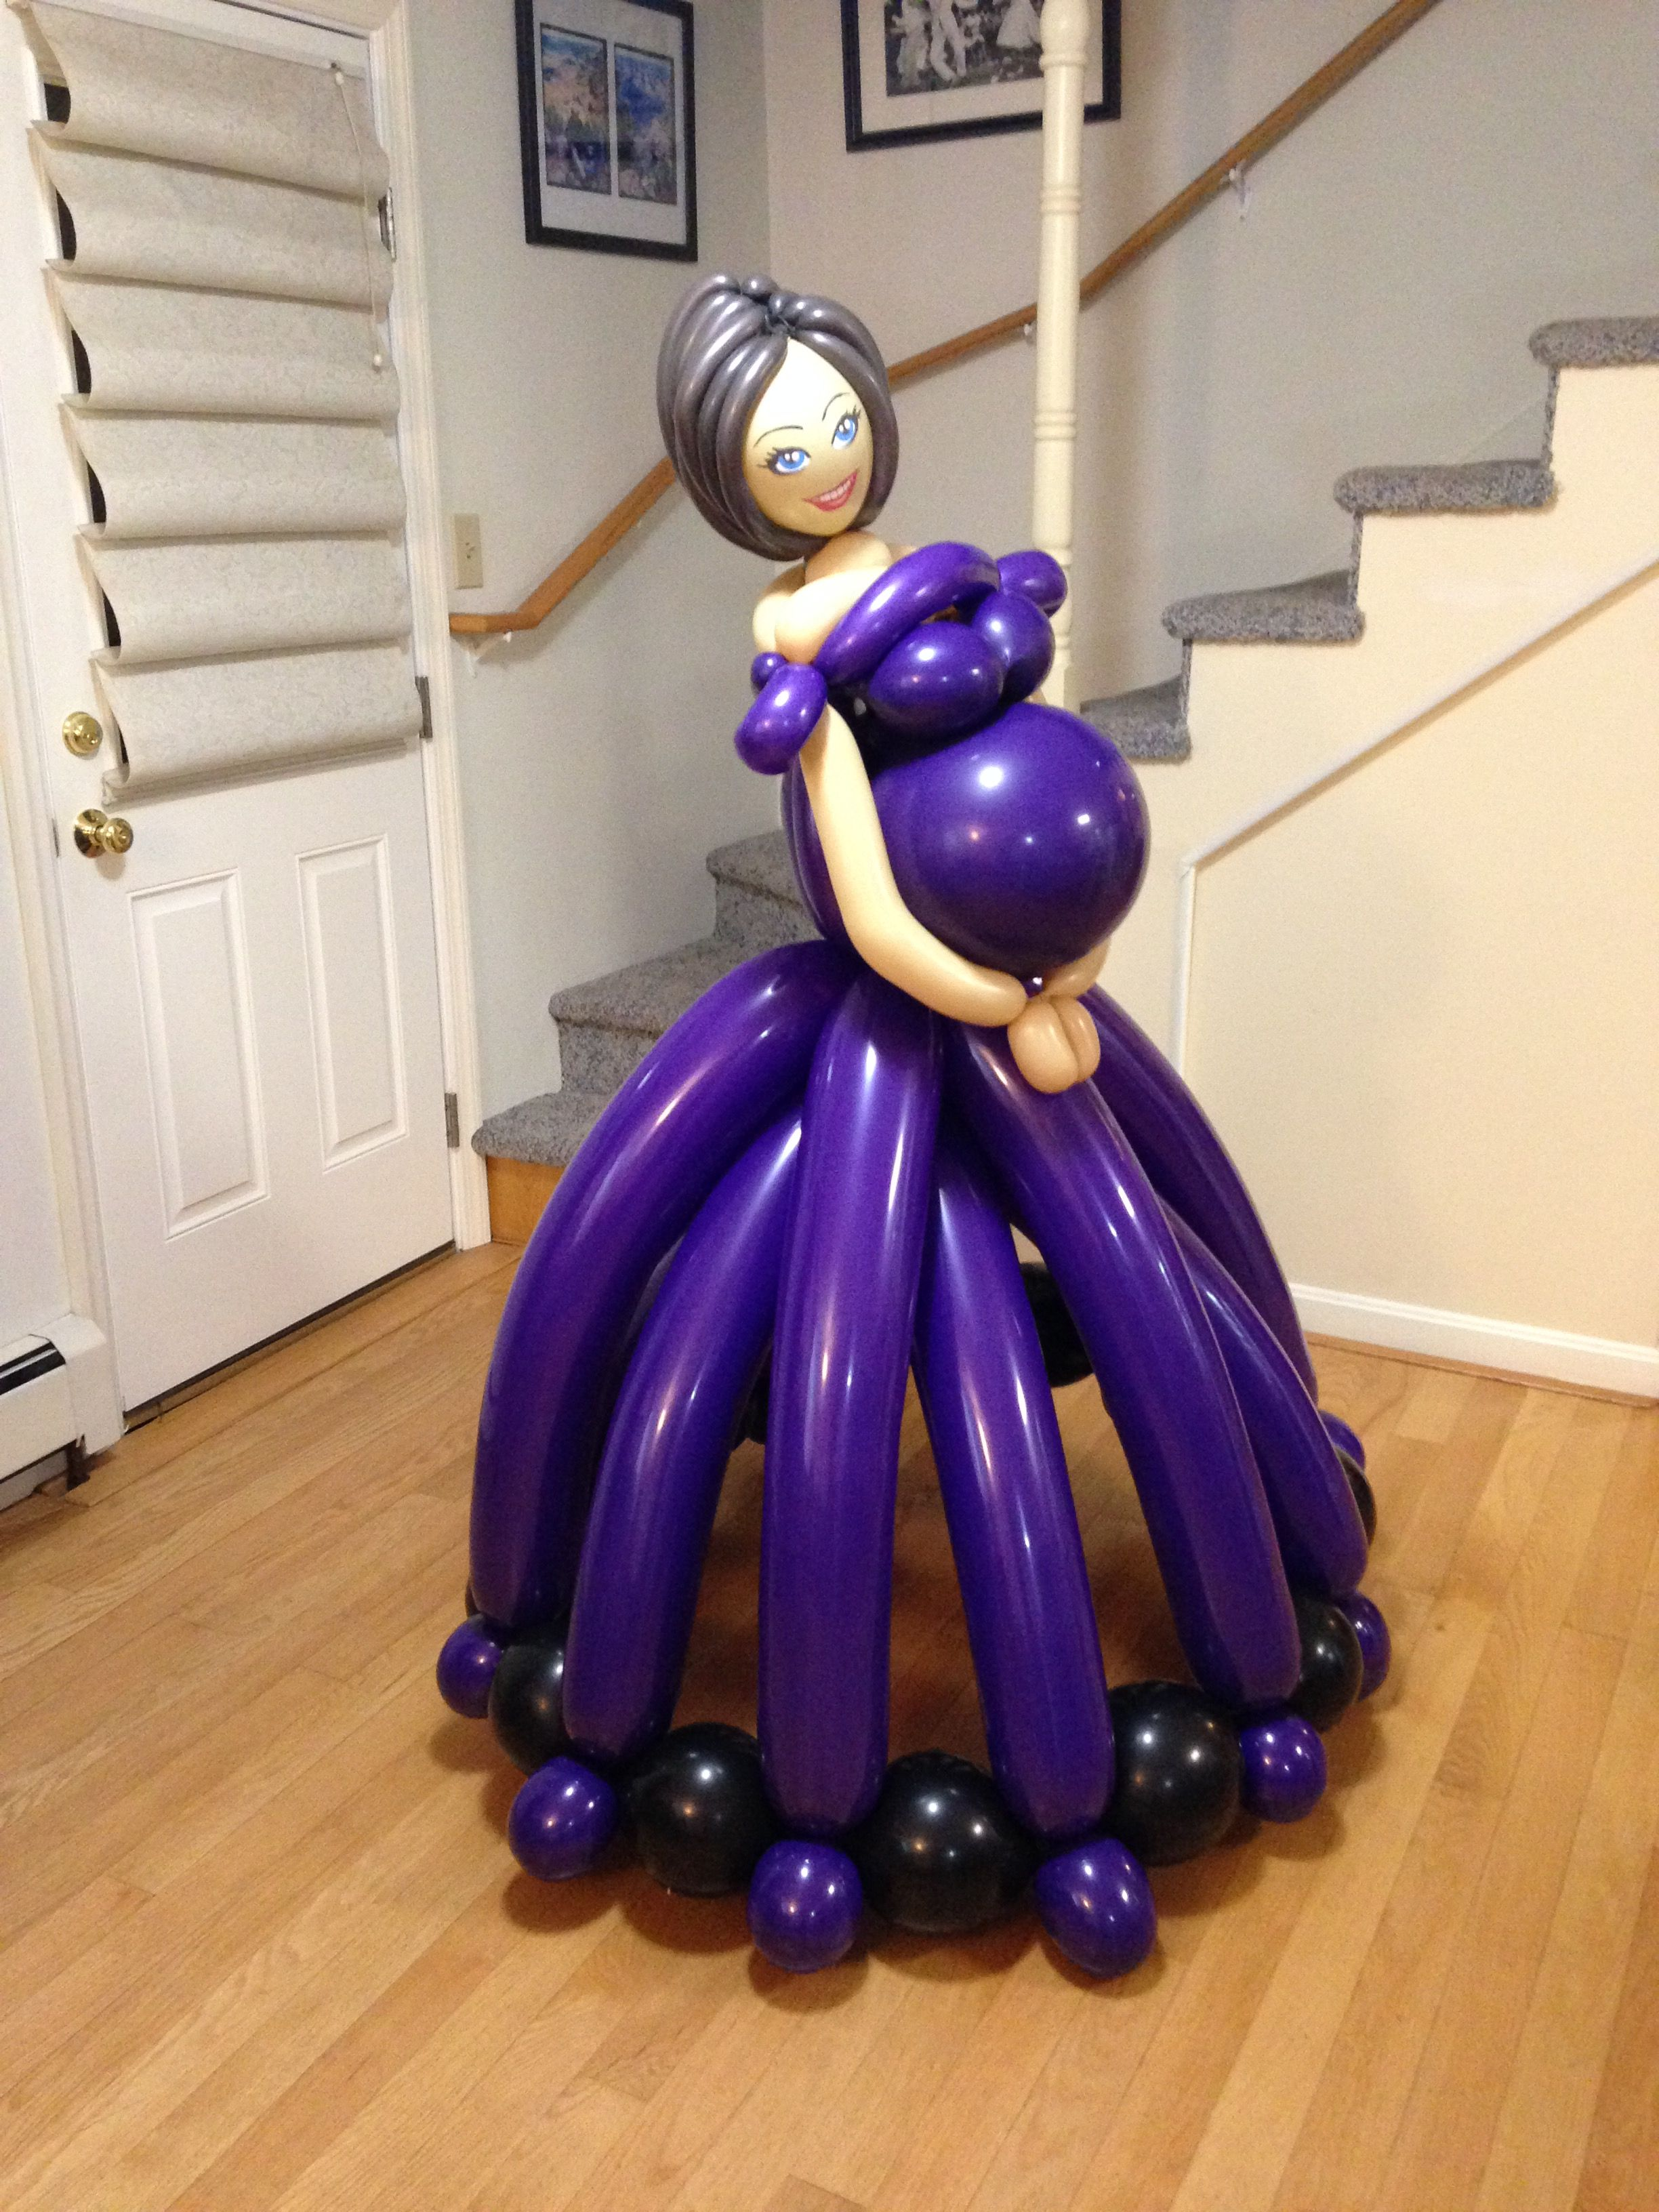 Abby London S Pregnant Lady Balloon Life Size Version In